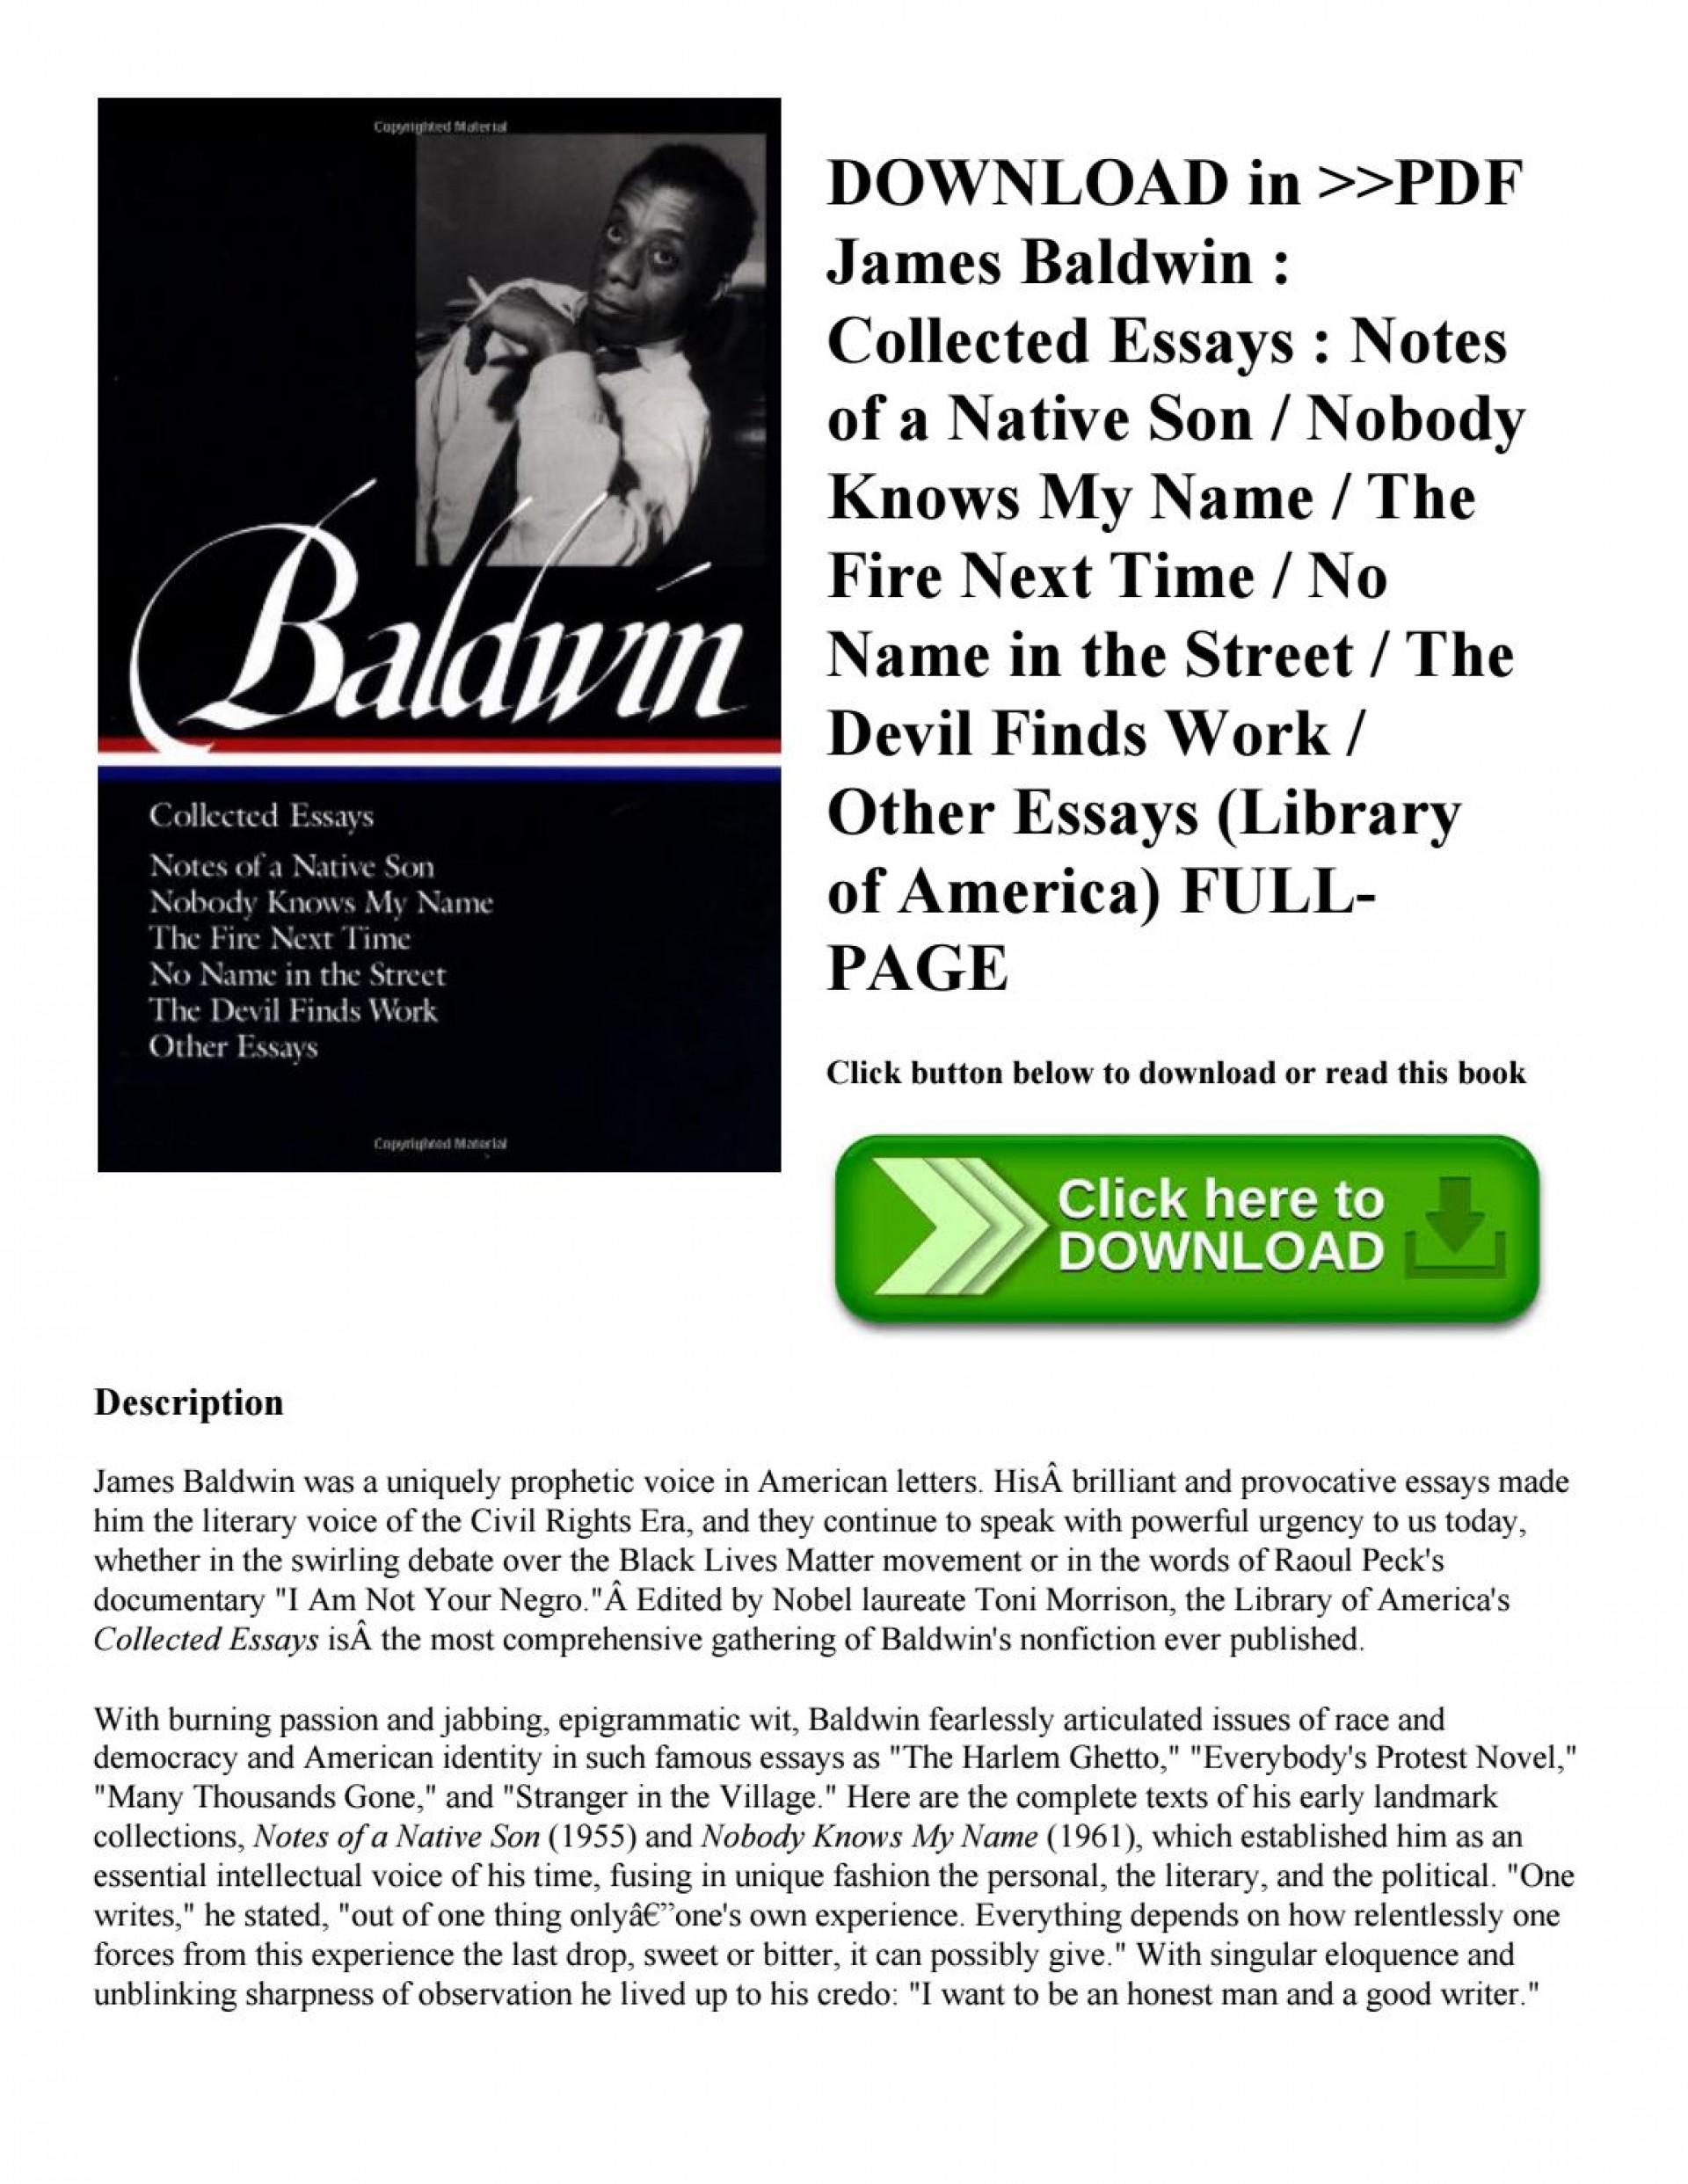 005 Essay Example James Baldwin Collected Essays Page 1 Wondrous Google Books Pdf Table Of Contents 1920